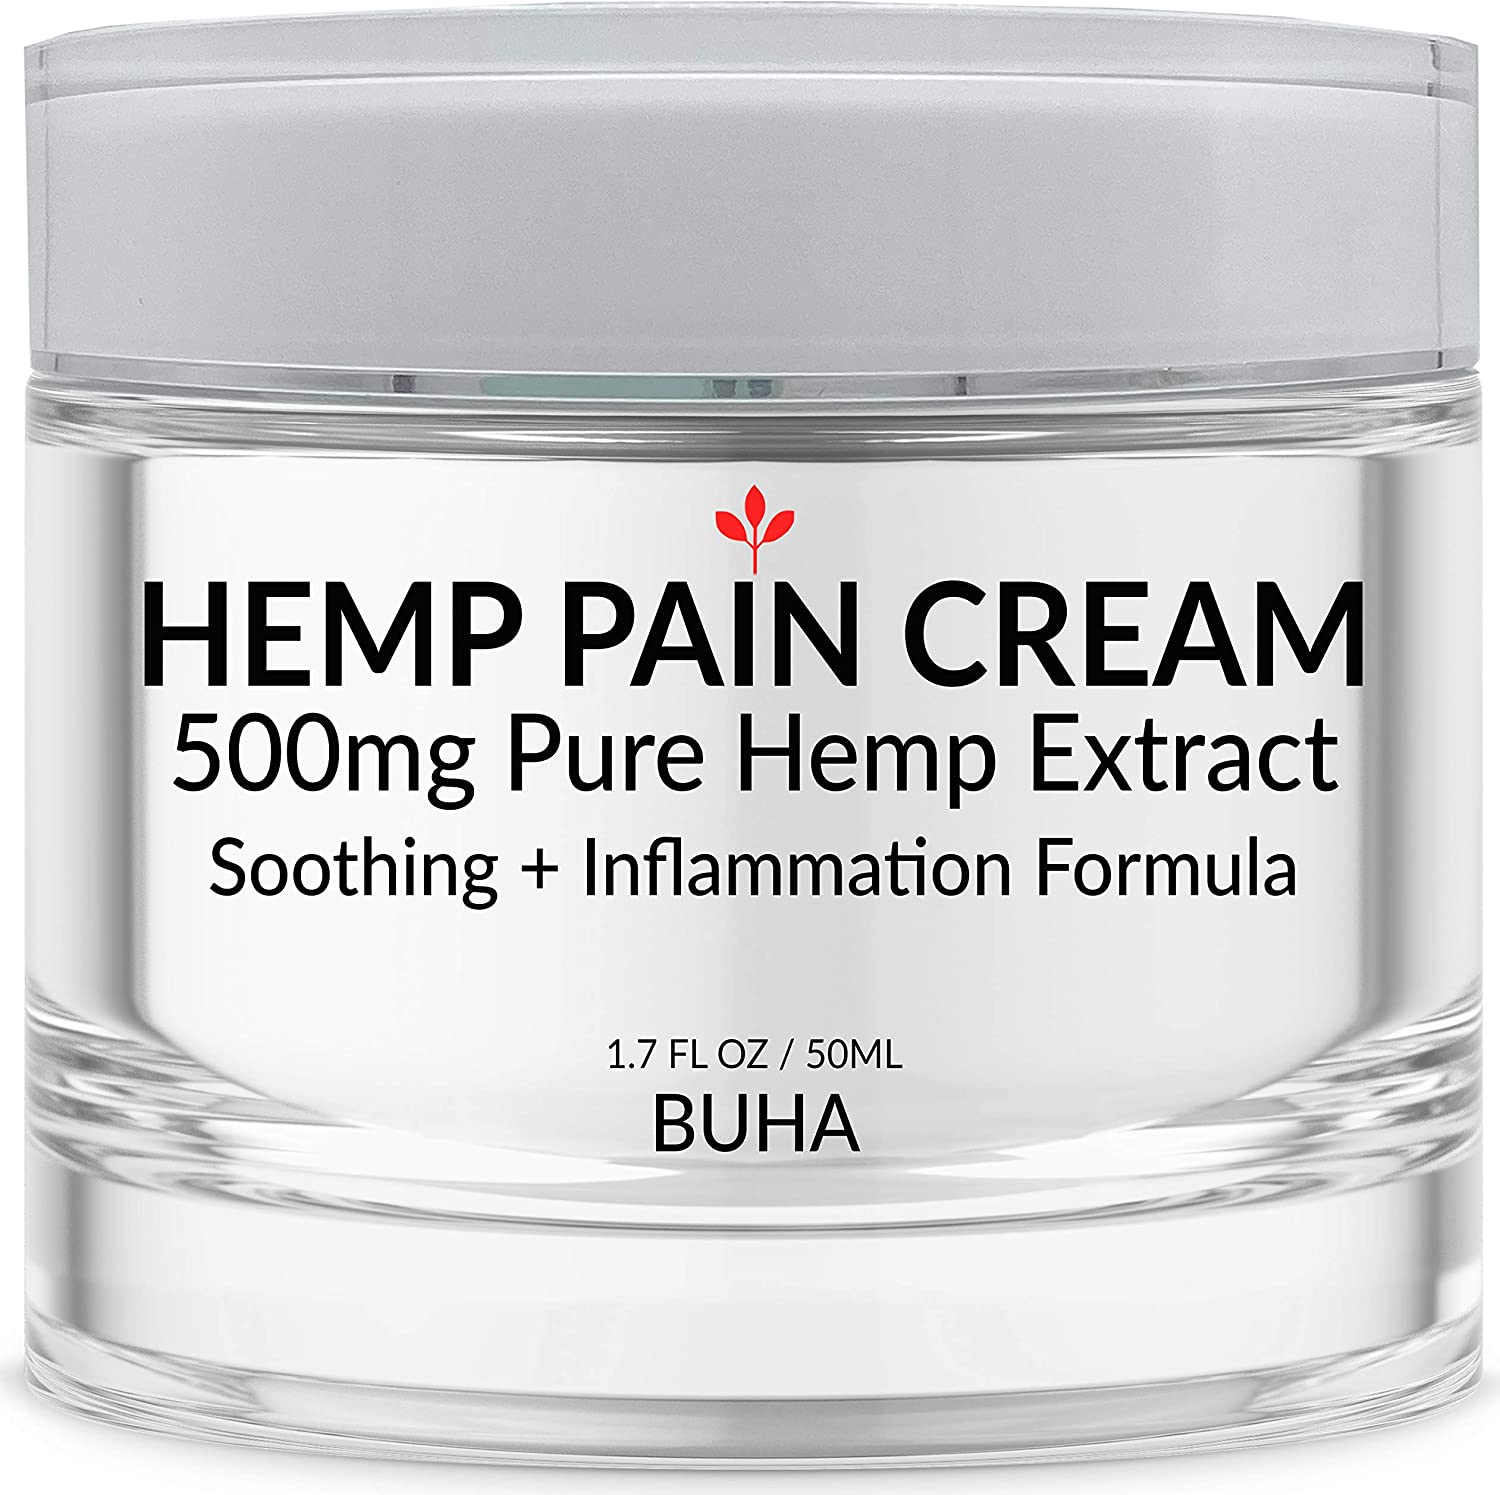 Hemp Cream for Pain Relief - Pure 500mg Extract - Relieves Muscle Pain - Reduces Soreness & Inflammation - Menthol Free - All Natural Arnica + MSM + Caffeine + Tea Tree + EMU - Made in The USA, 50ML.